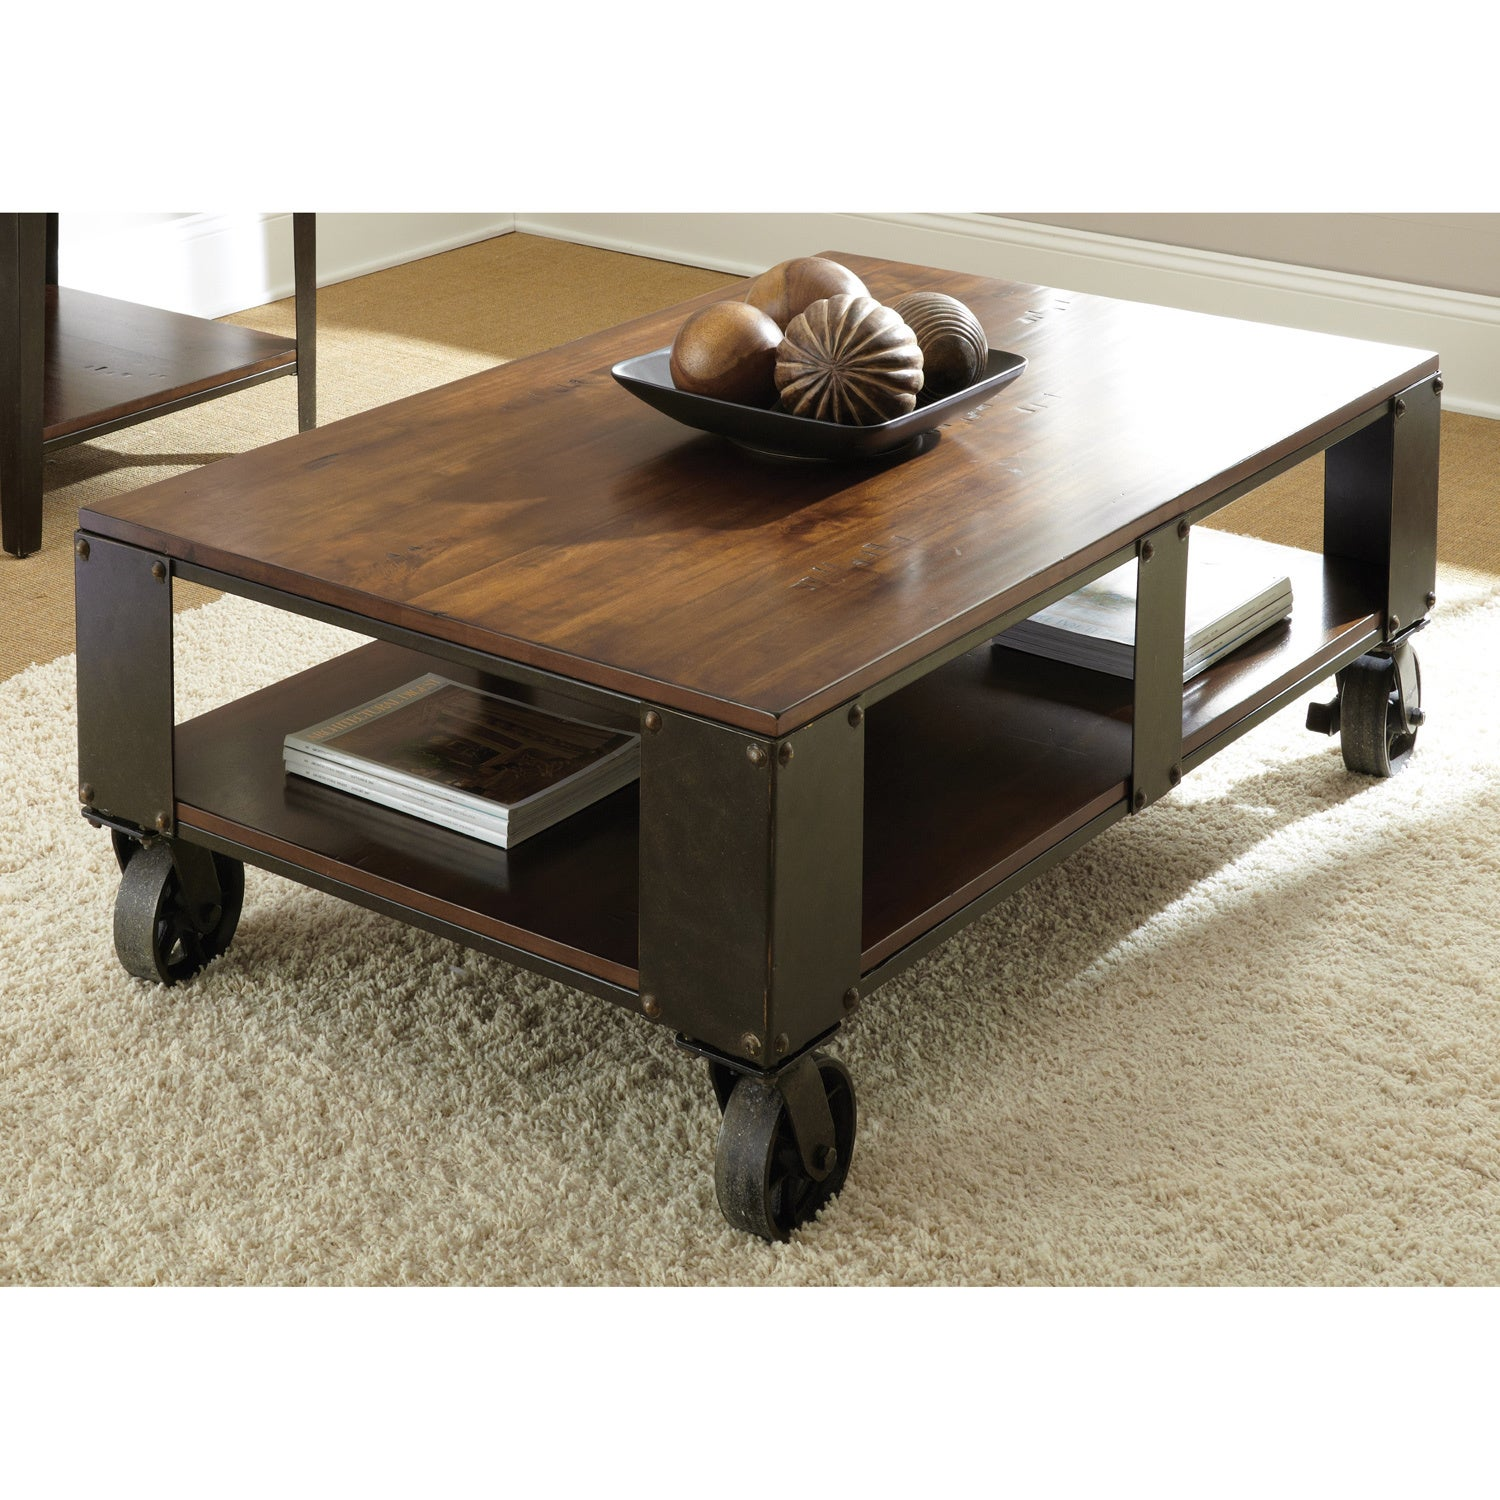 Baxter Oversized Distressed Coffee Table by Greyson Living Free